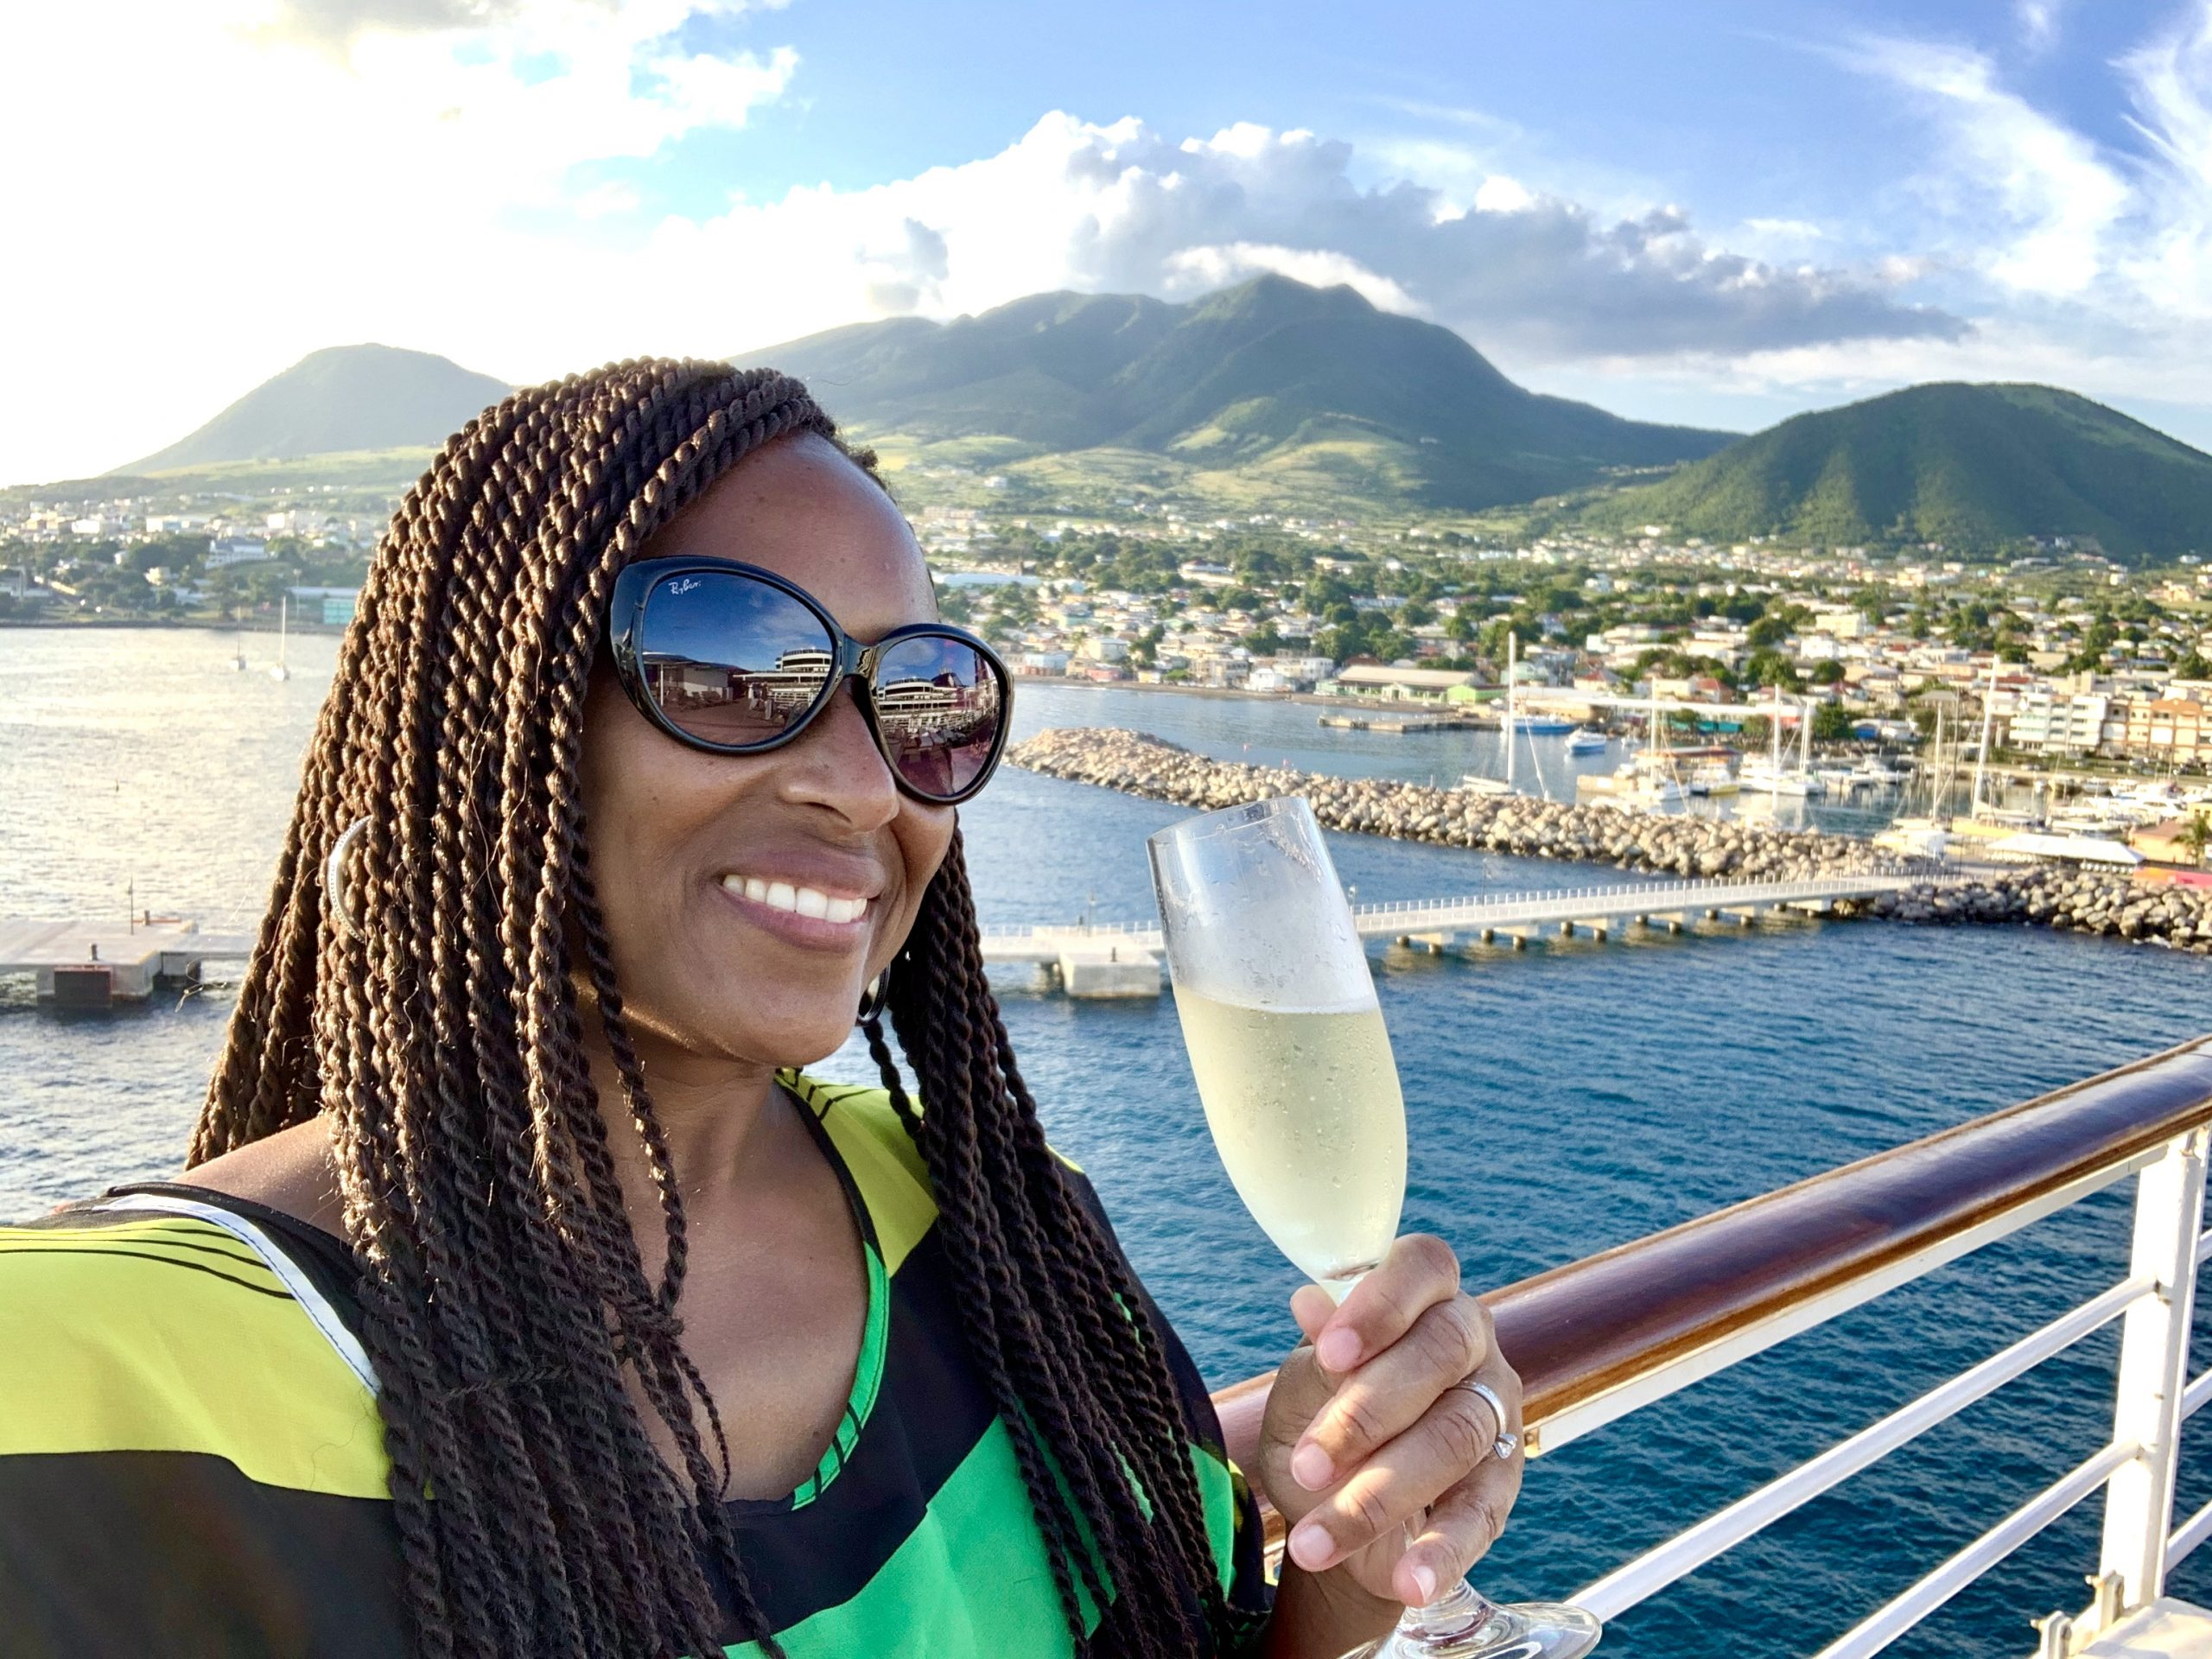 Nadeen White from The Sophisticated Life on a cruise